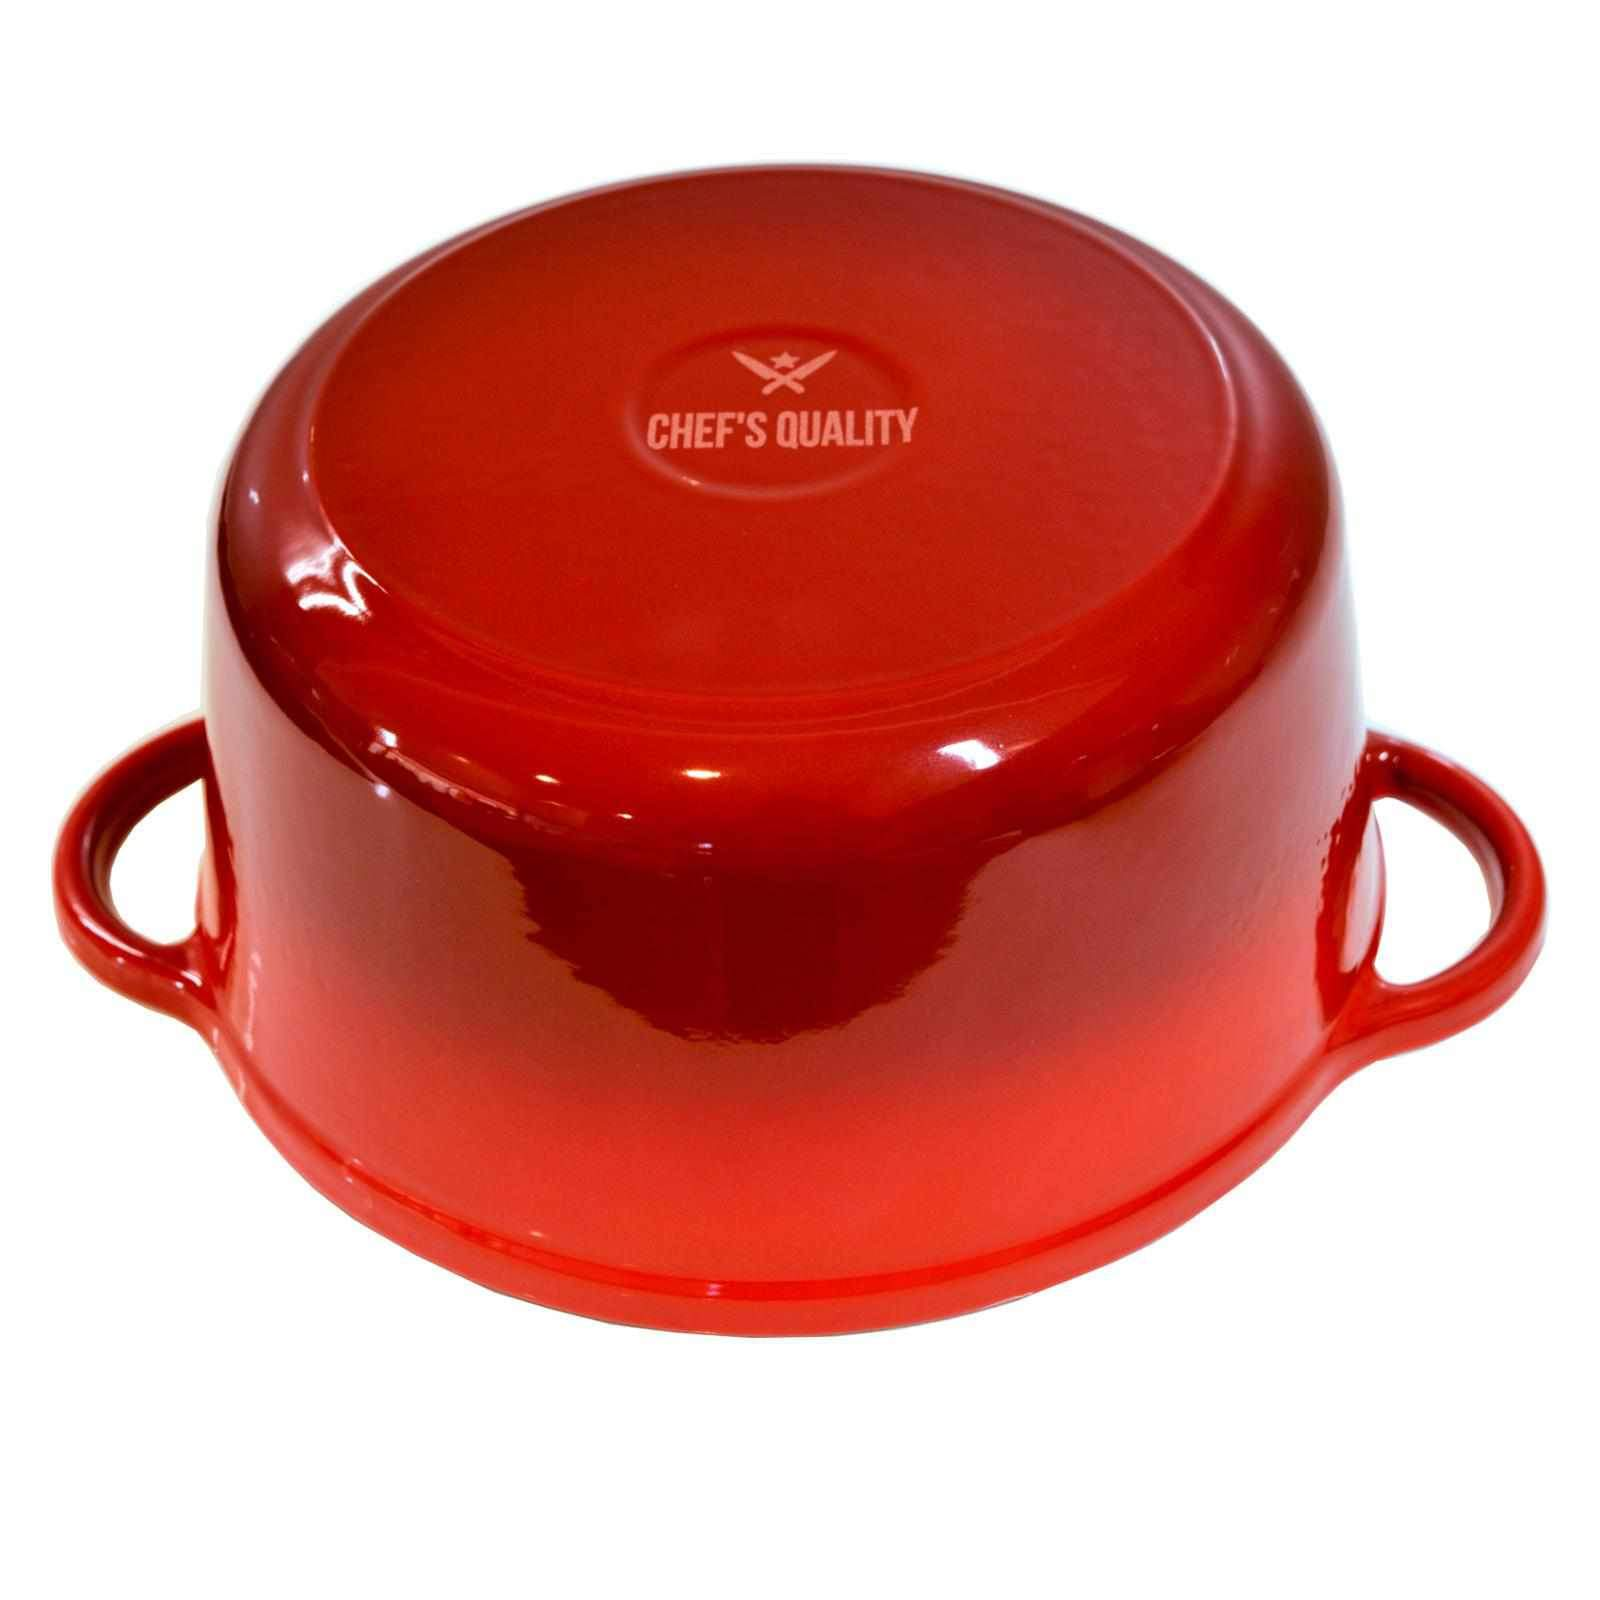 Chef's Quality Cast Iron Enamel Cookware Set - Induction Compatible-Cookware Set-Chef's Quality Cookware